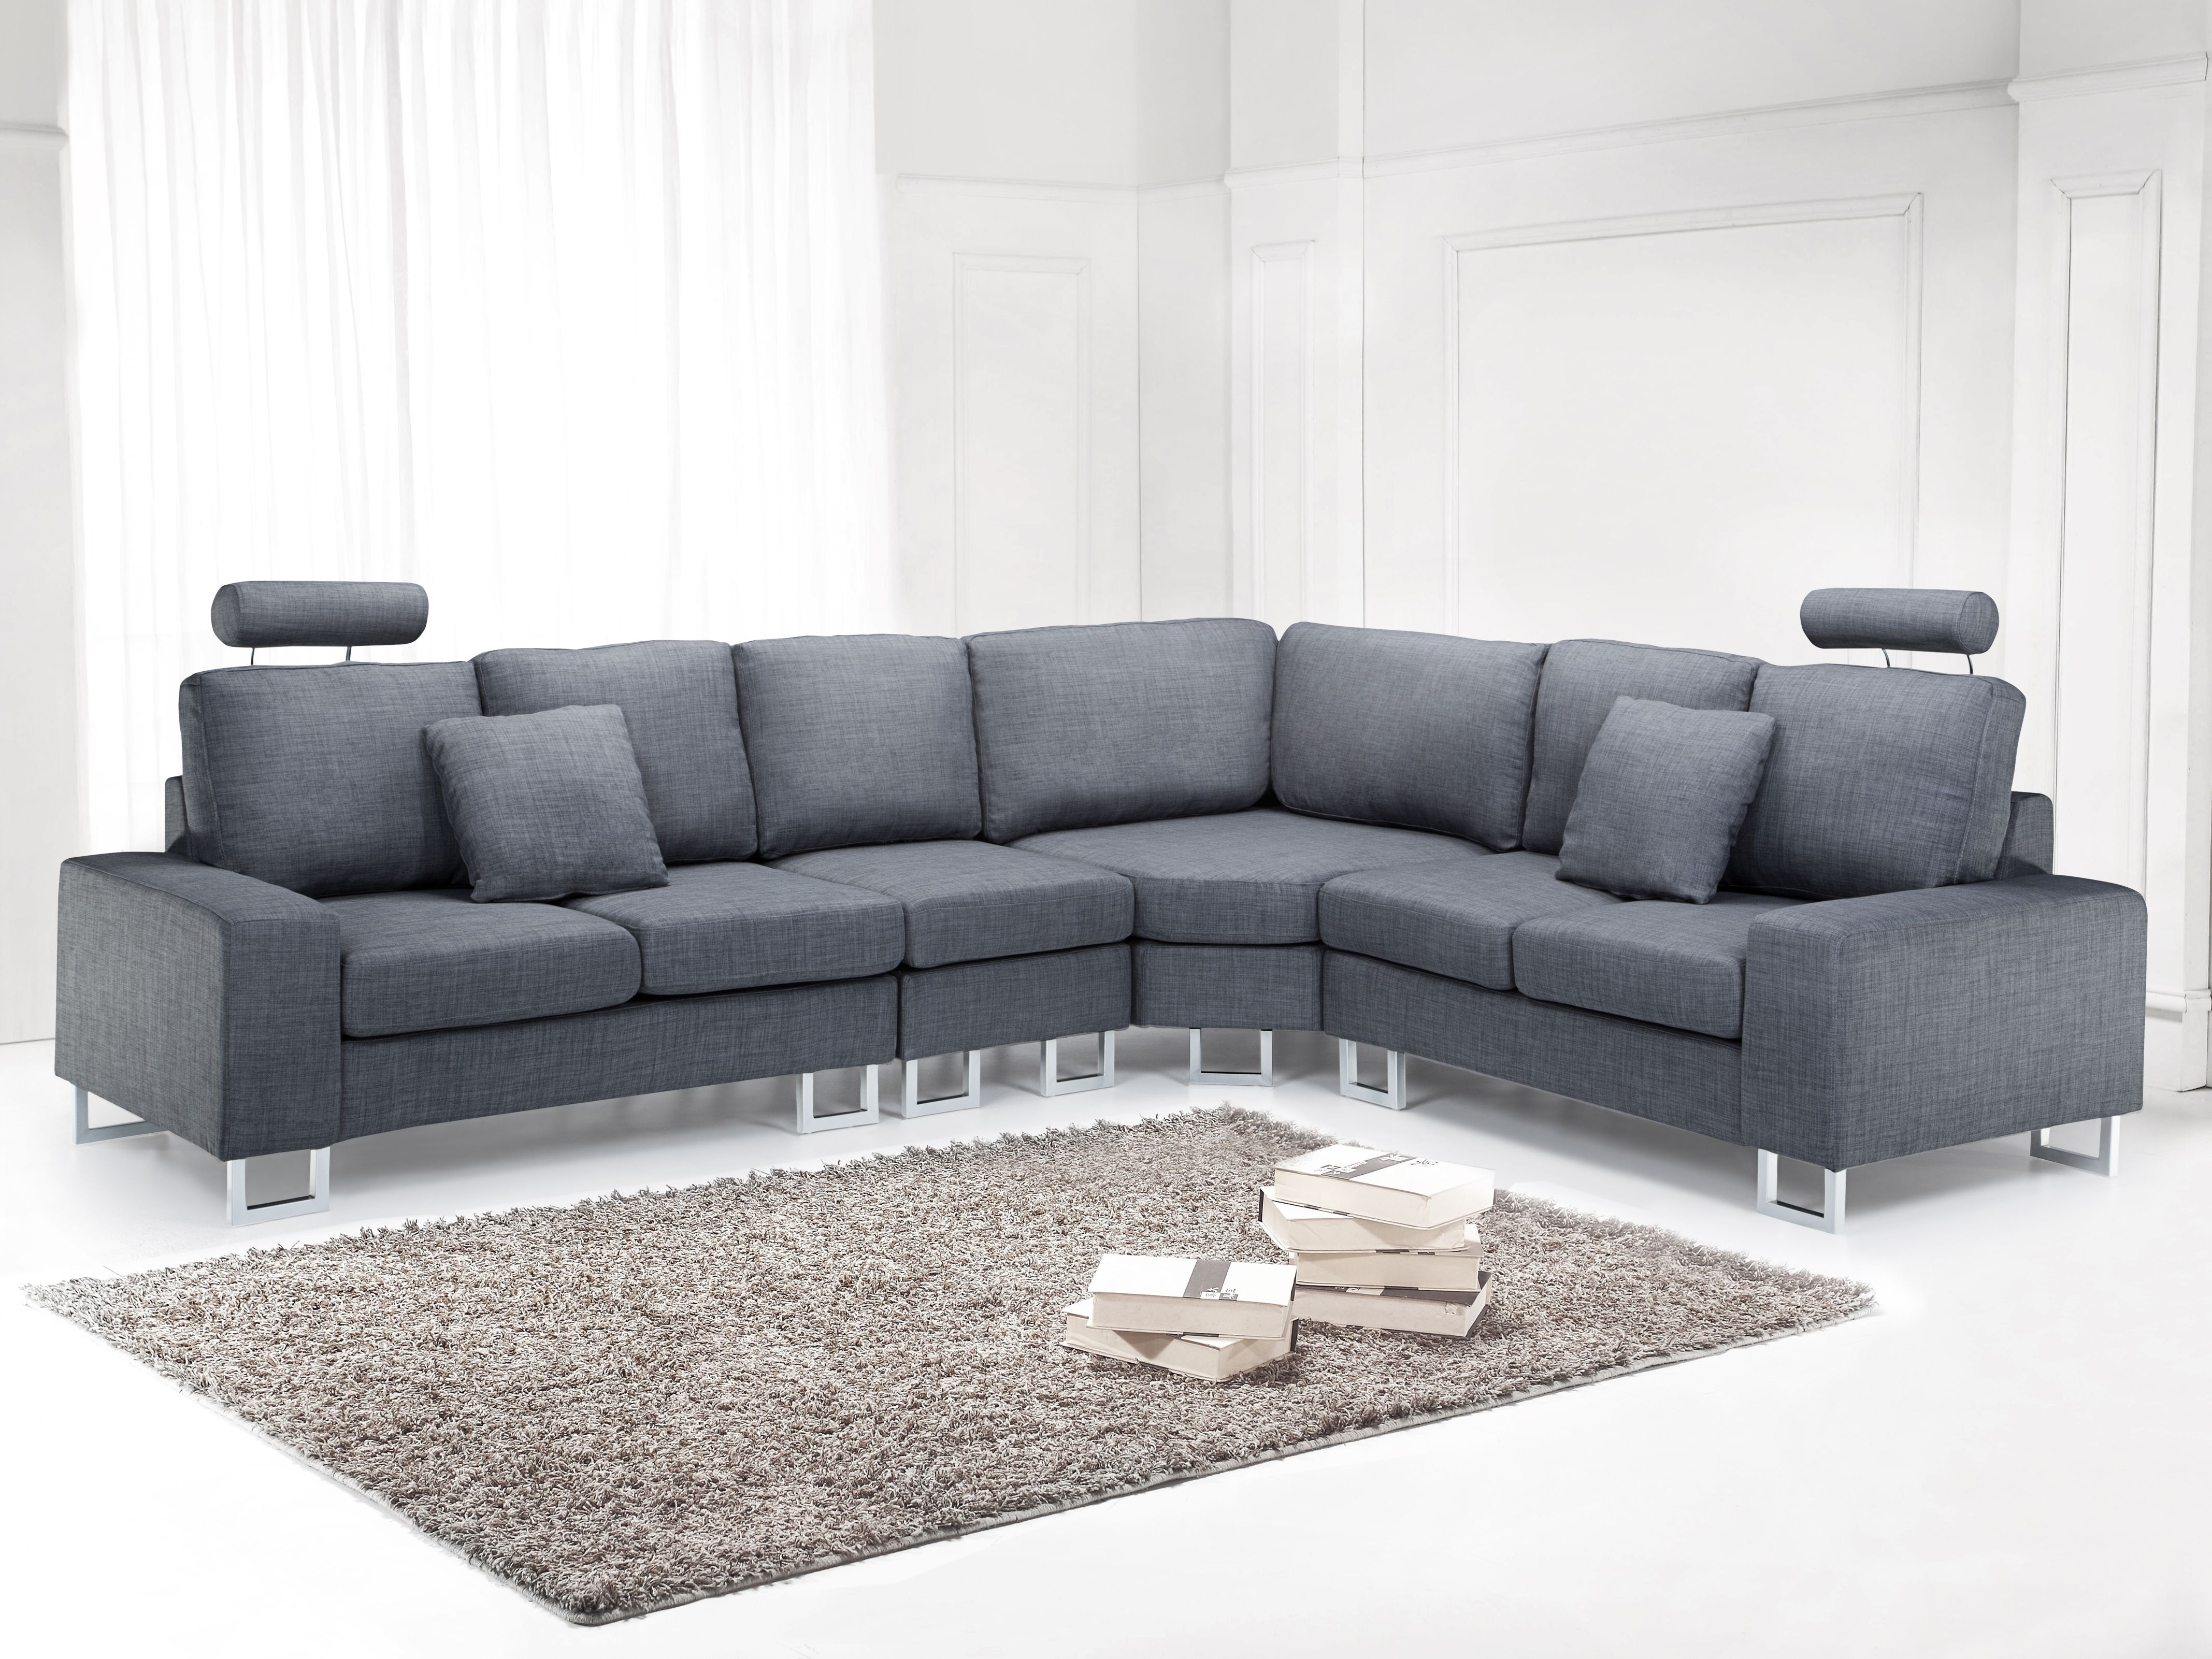 cool Great Dark Grey Sectional Sofa 68 For Your Home Decoration